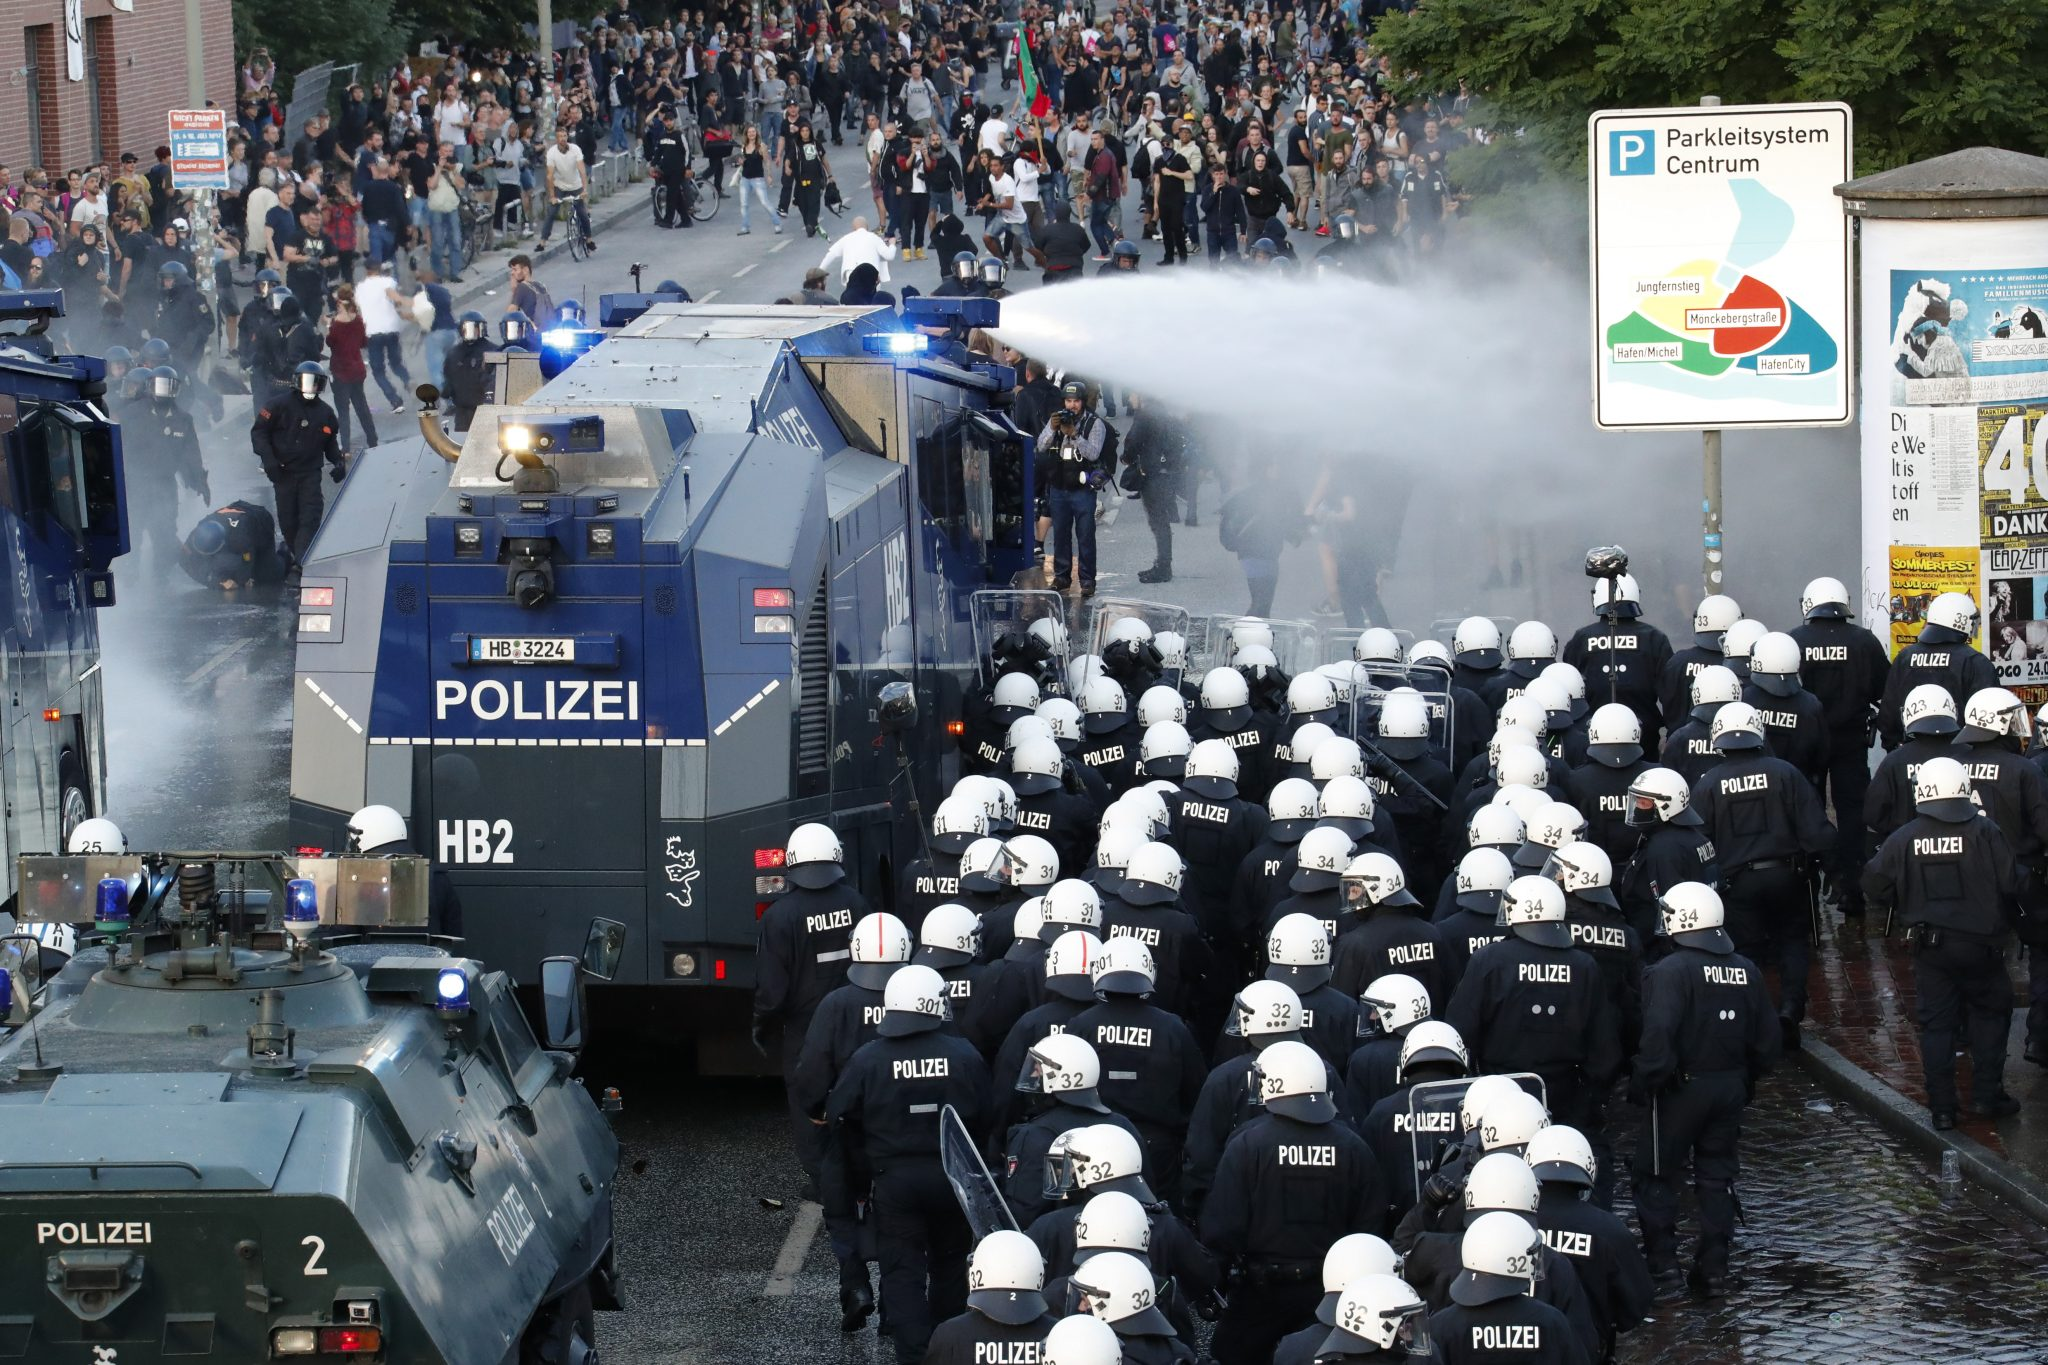 German riot police use water cannons against protesters during the demonstrations during the G20 summit in Hamburg | REUTERS